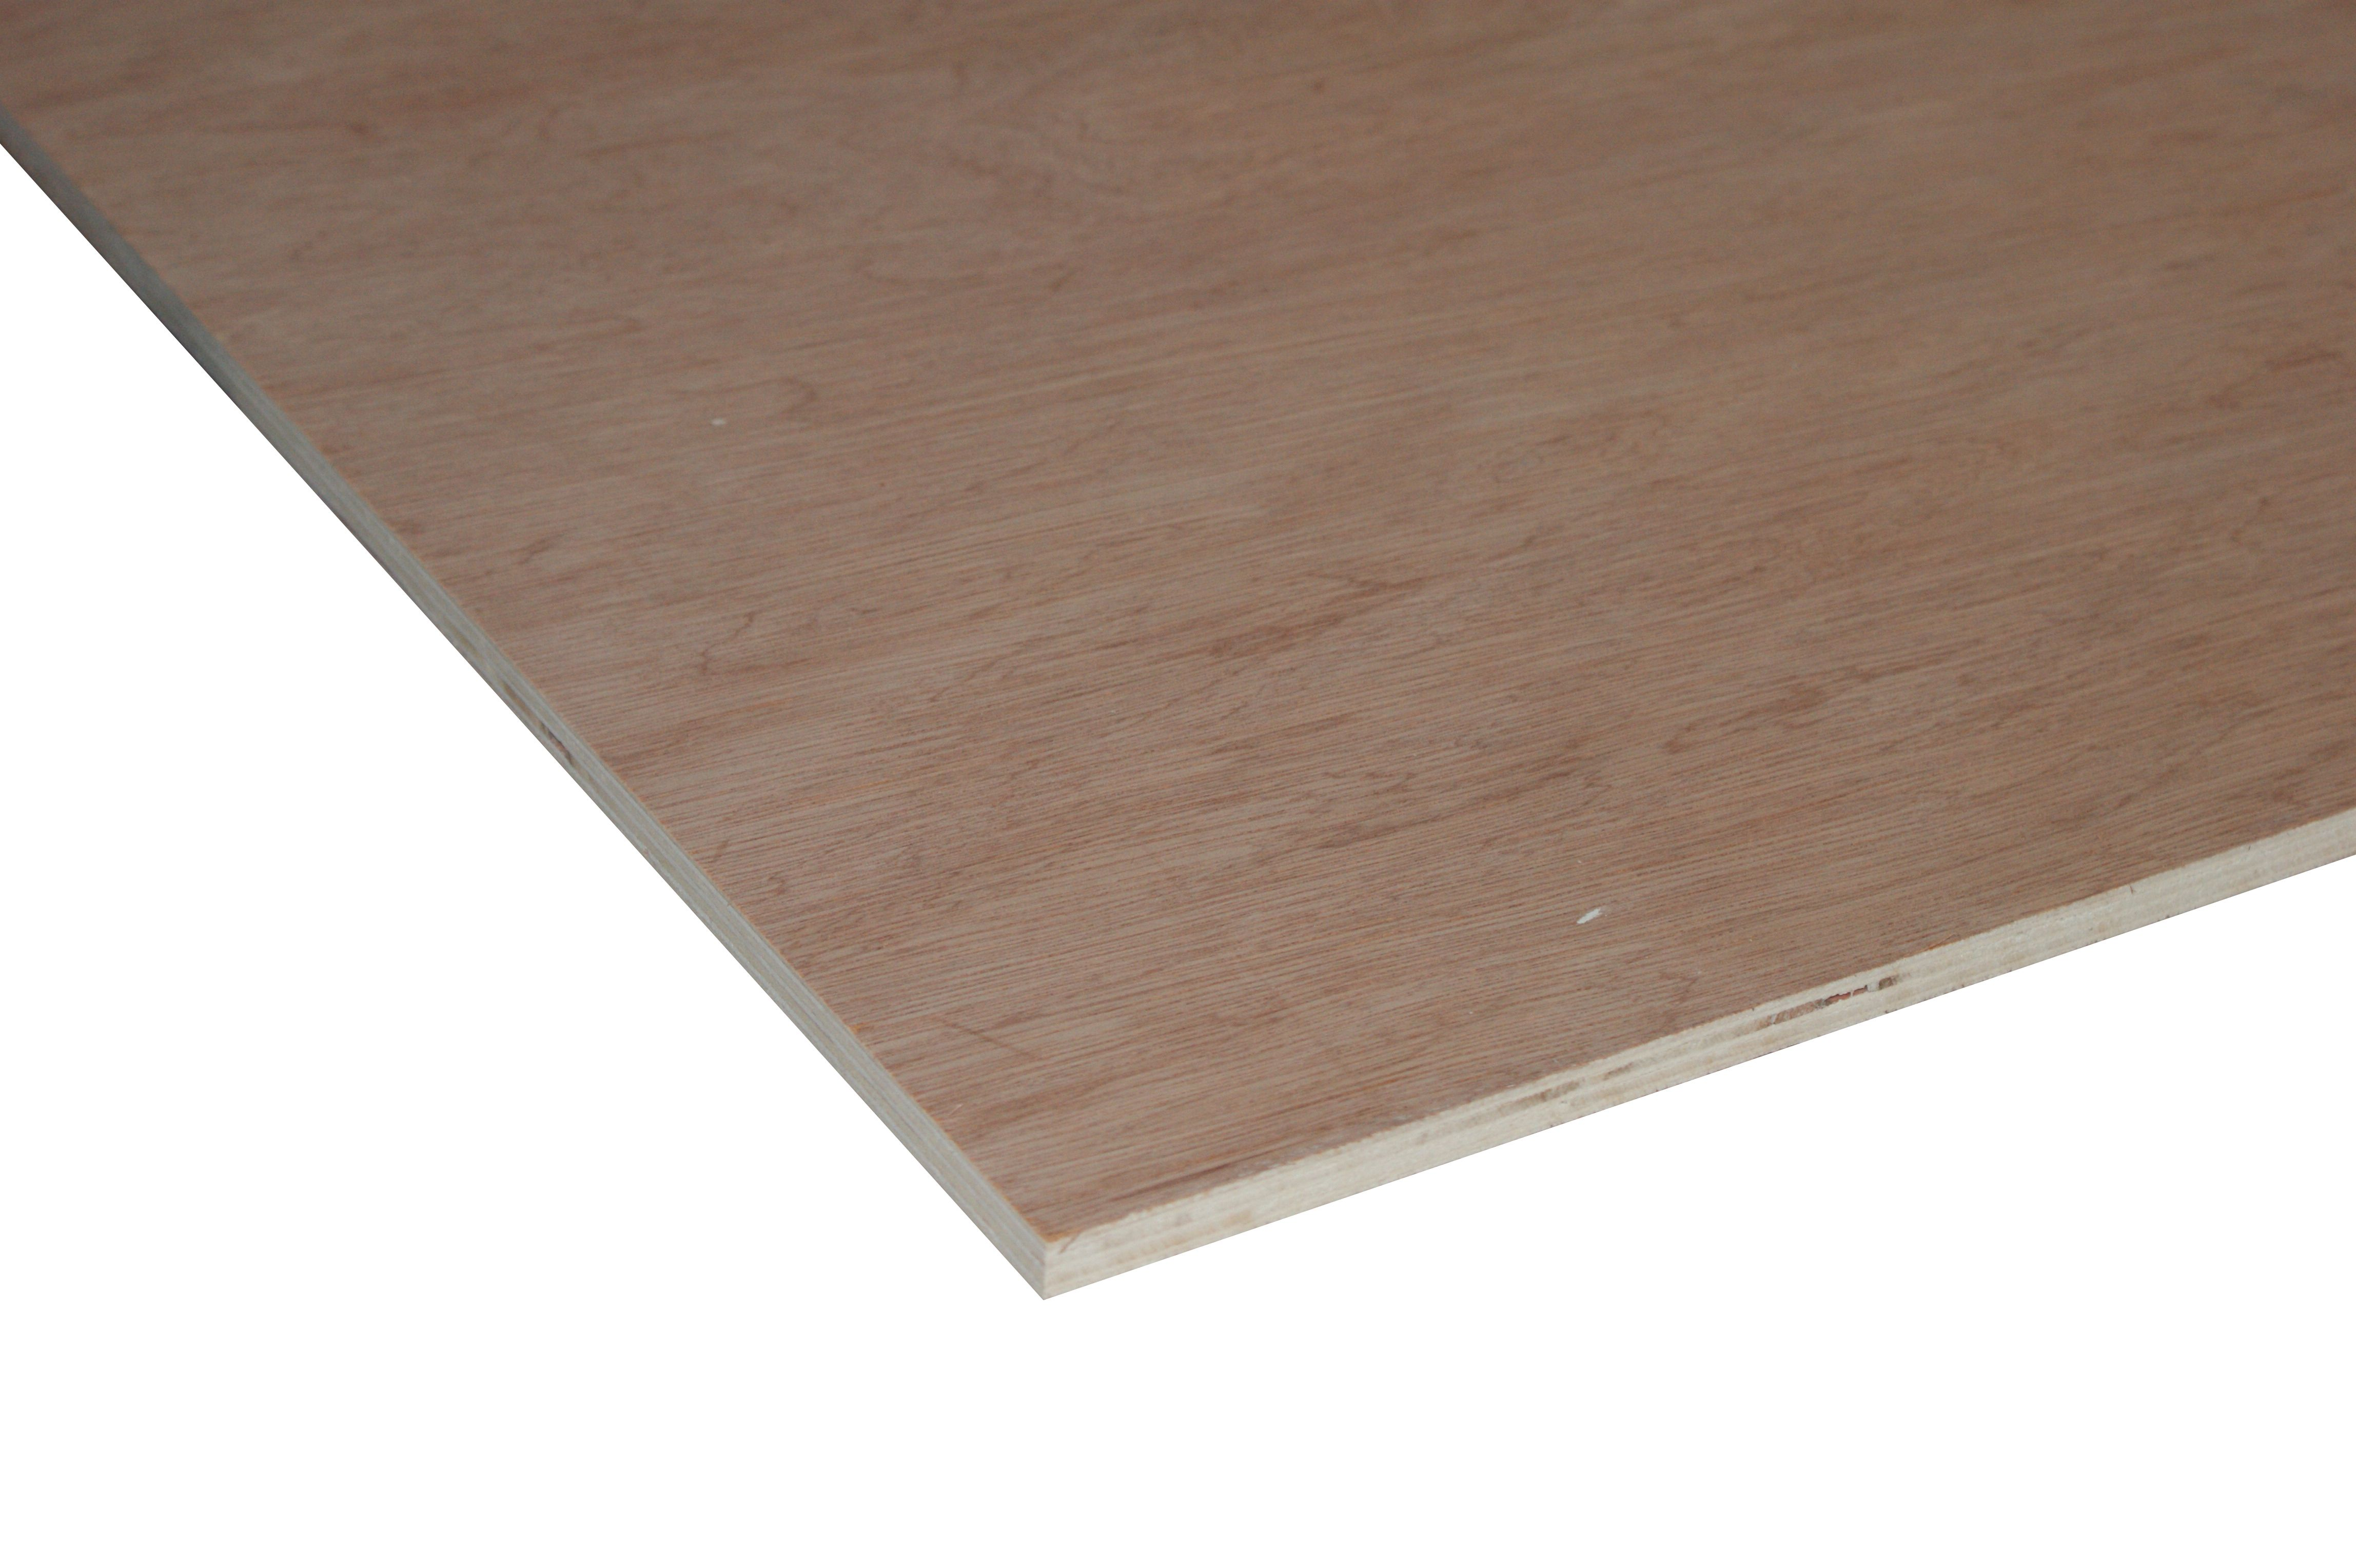 Wickes Non Structural Hardwood Plywood   12mm X 1.22m X 2.44m by Wickes